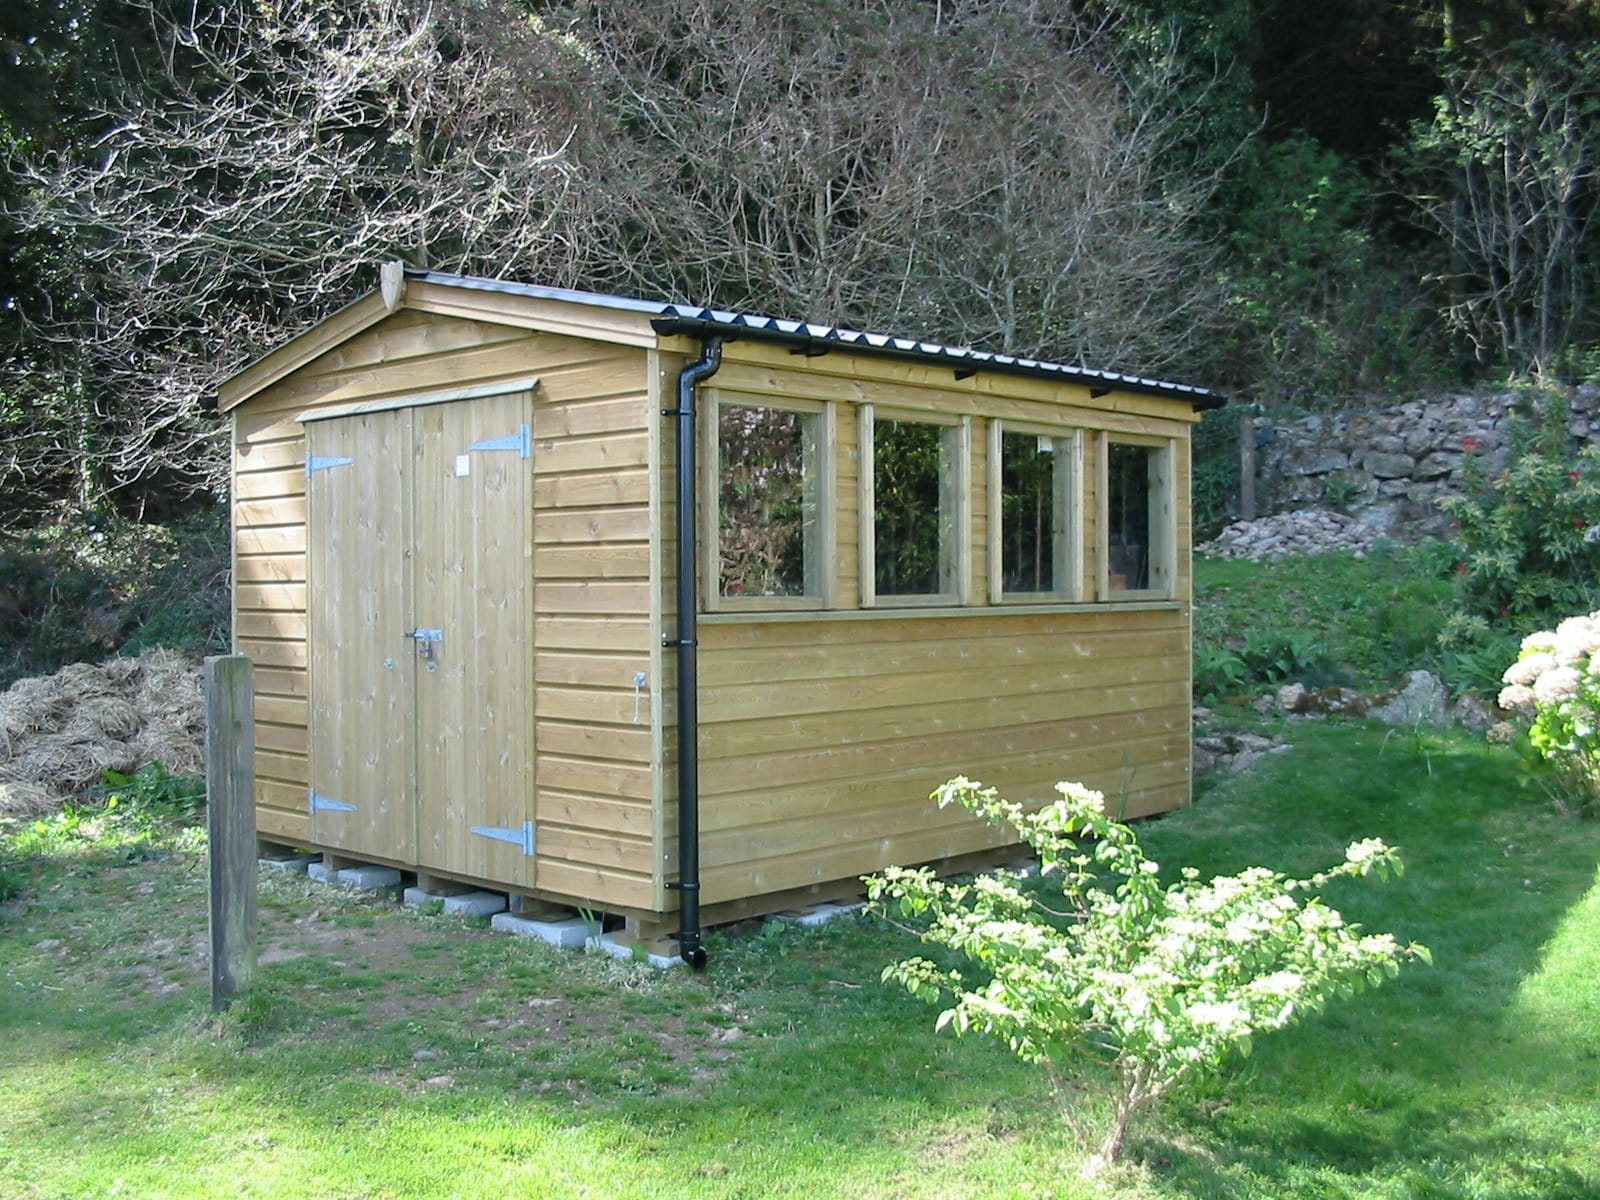 Wood clad shed with barn doors